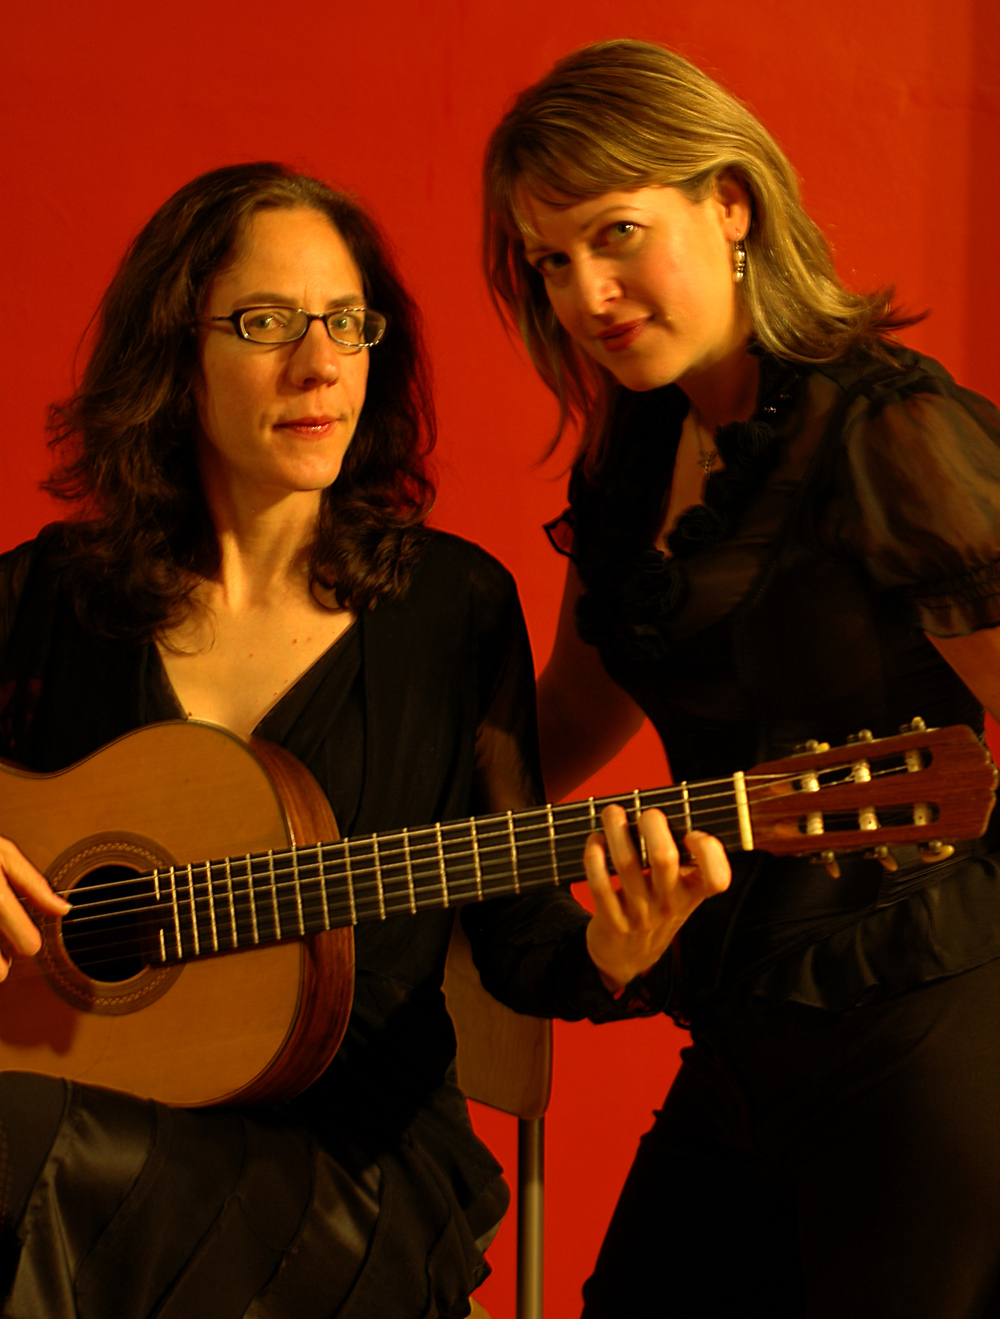 Jennifer Trowbridge and Buffy Baggott performing Spanish art songs by Joaquin Rodrigo and Manuel de Falla.